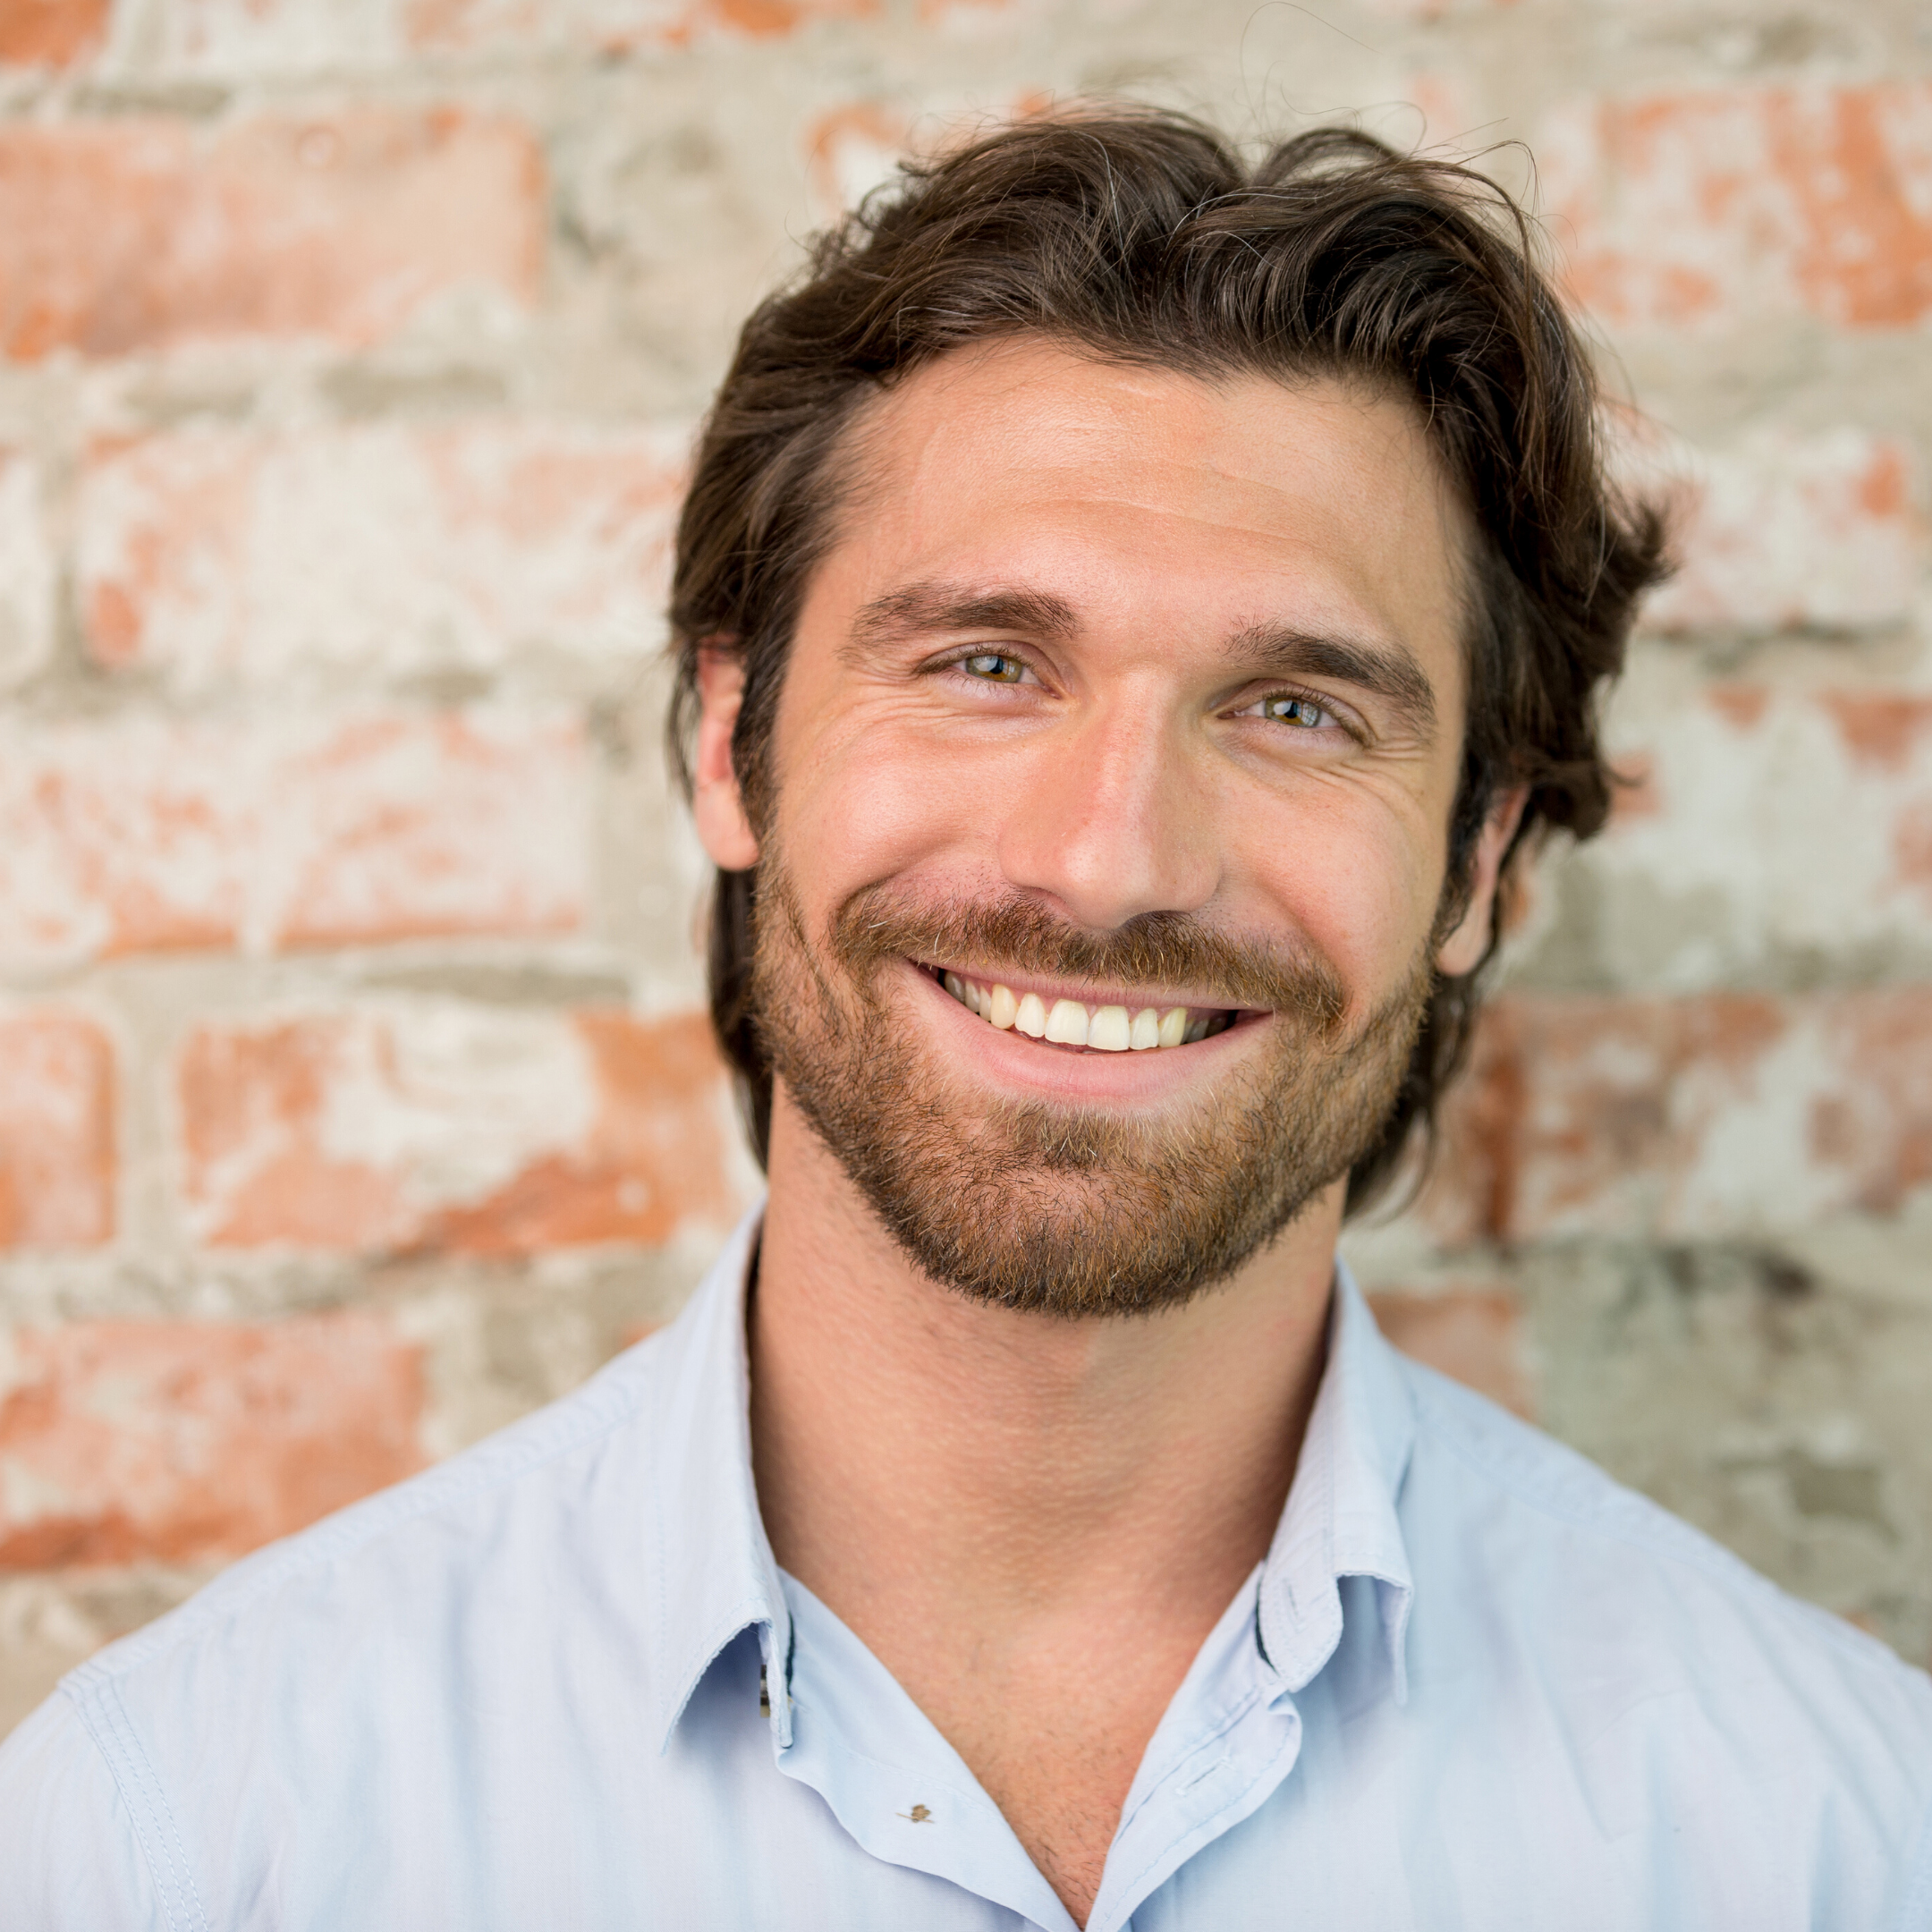 anti aging treatments for men